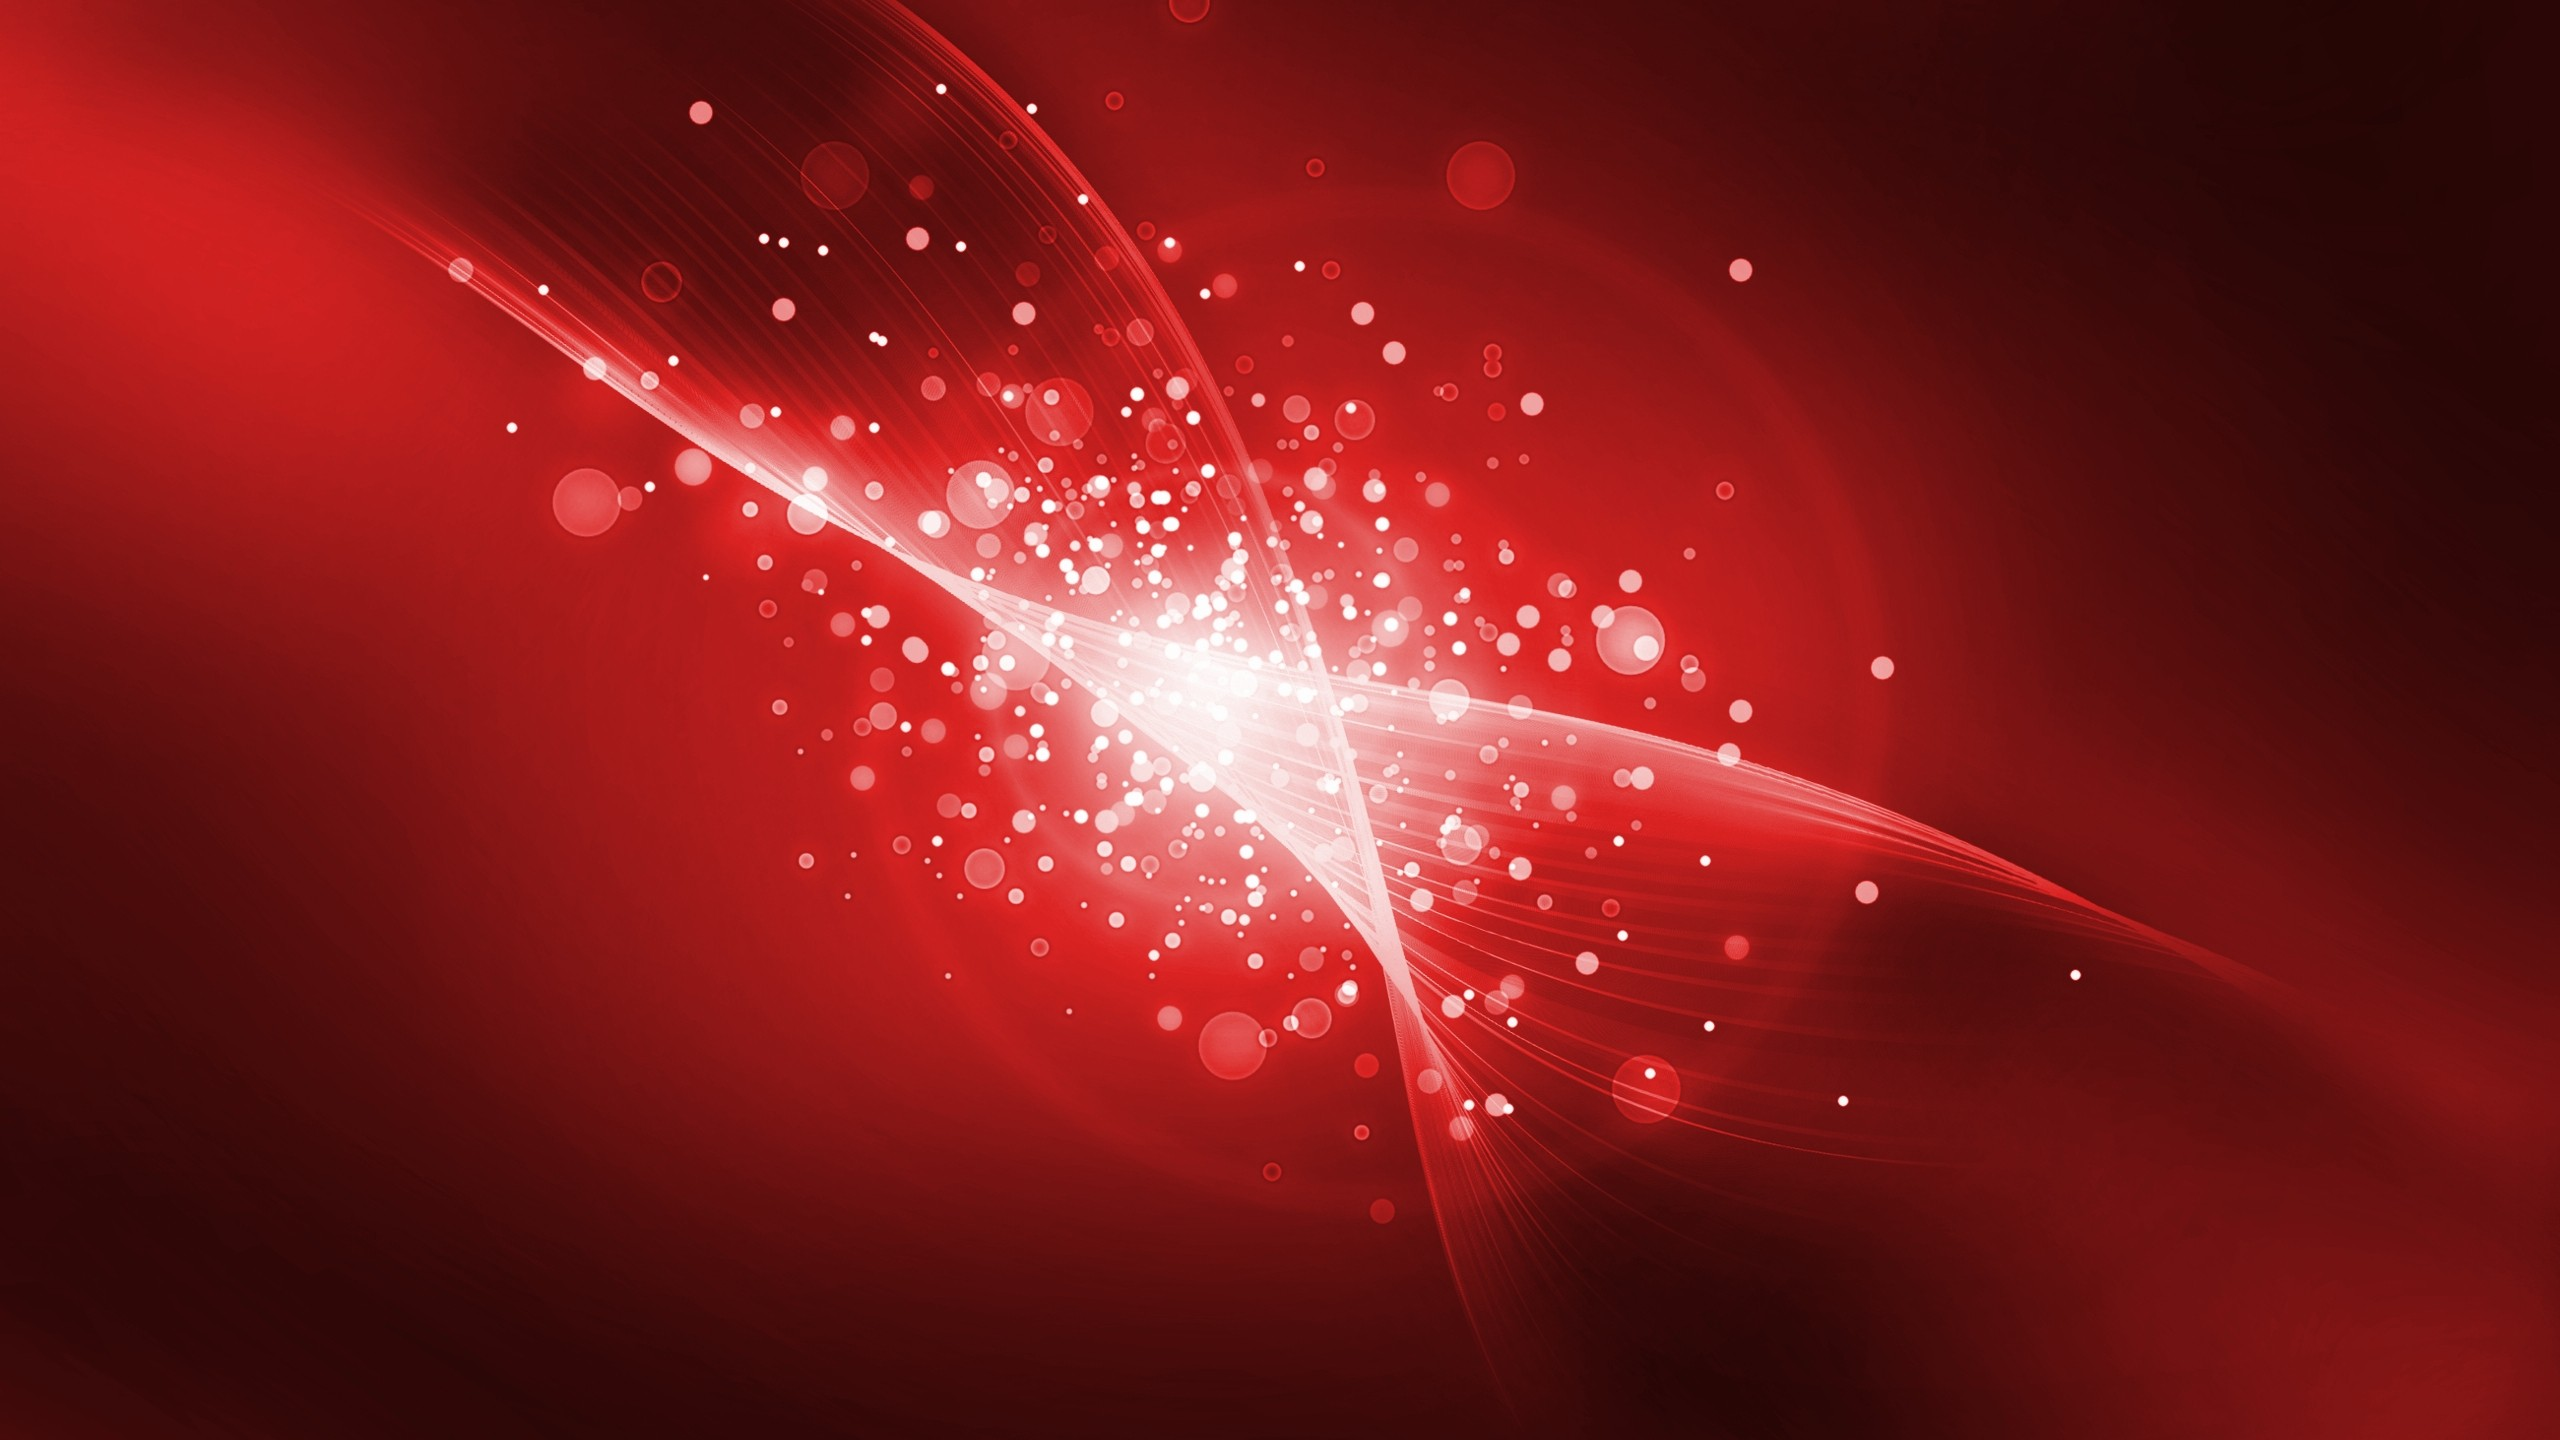 Abstract Red Wallpaper 2560x1440 Abstract, Red, Wall